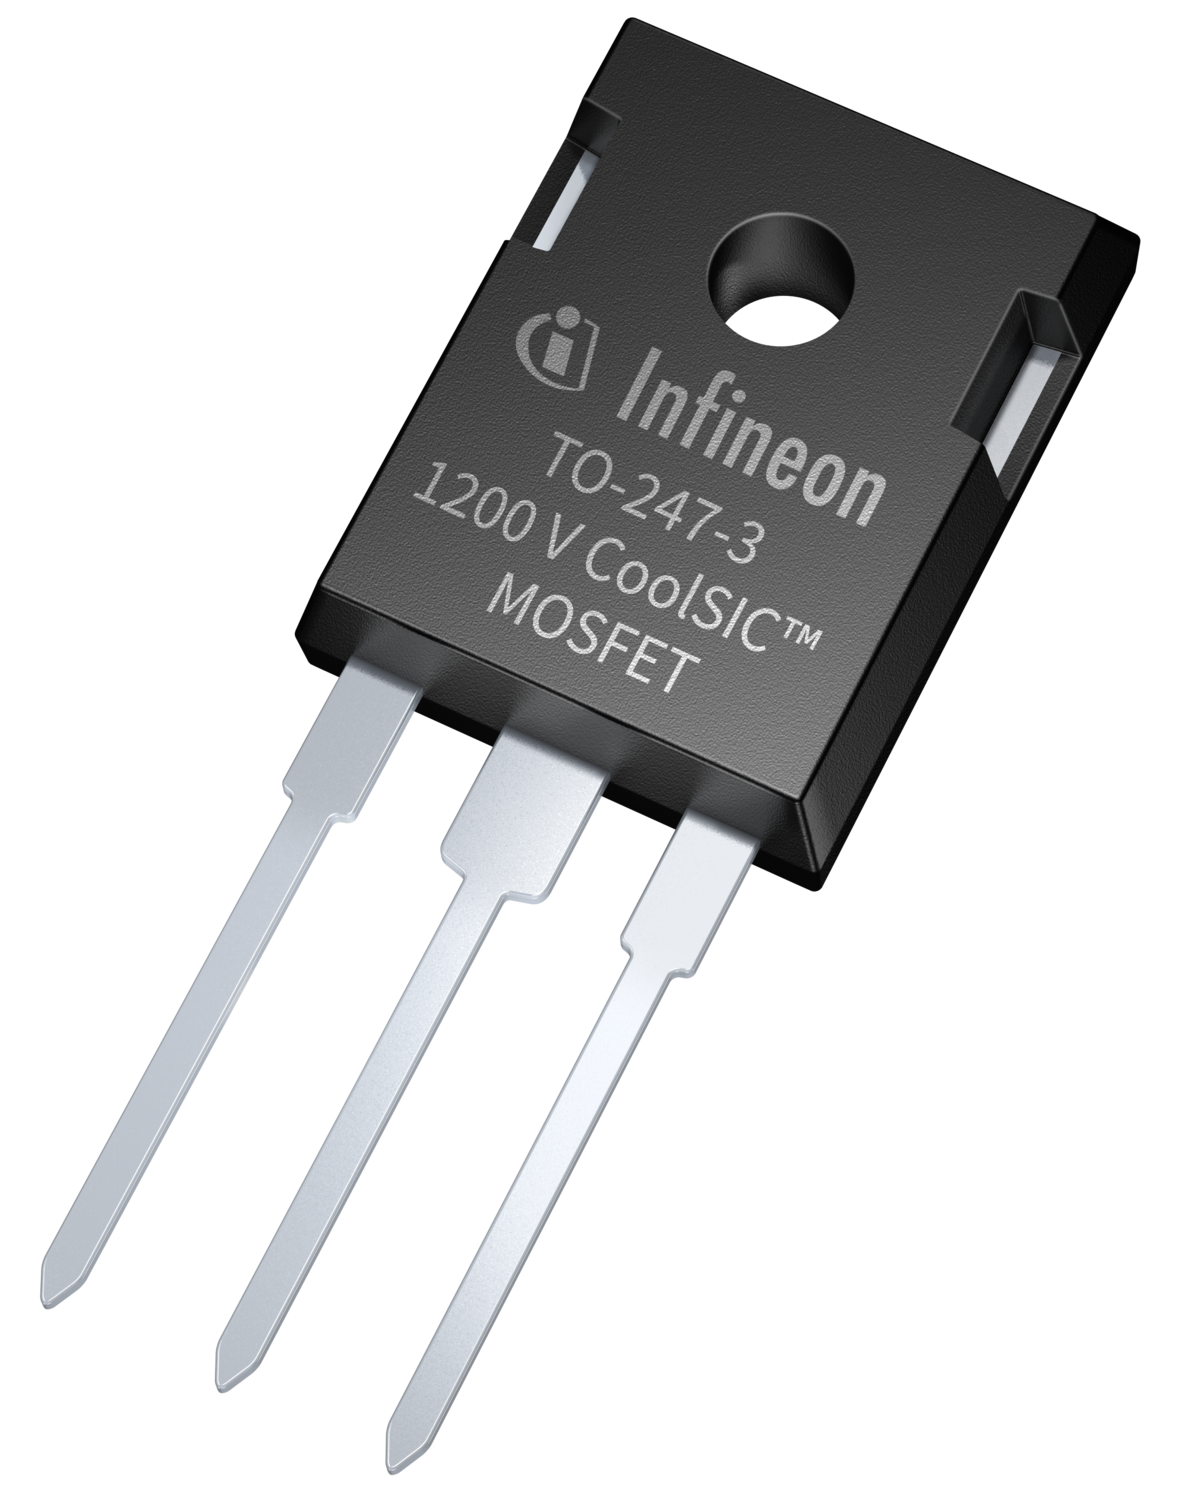 CoolSiC™ MOSFET 1200 V technology